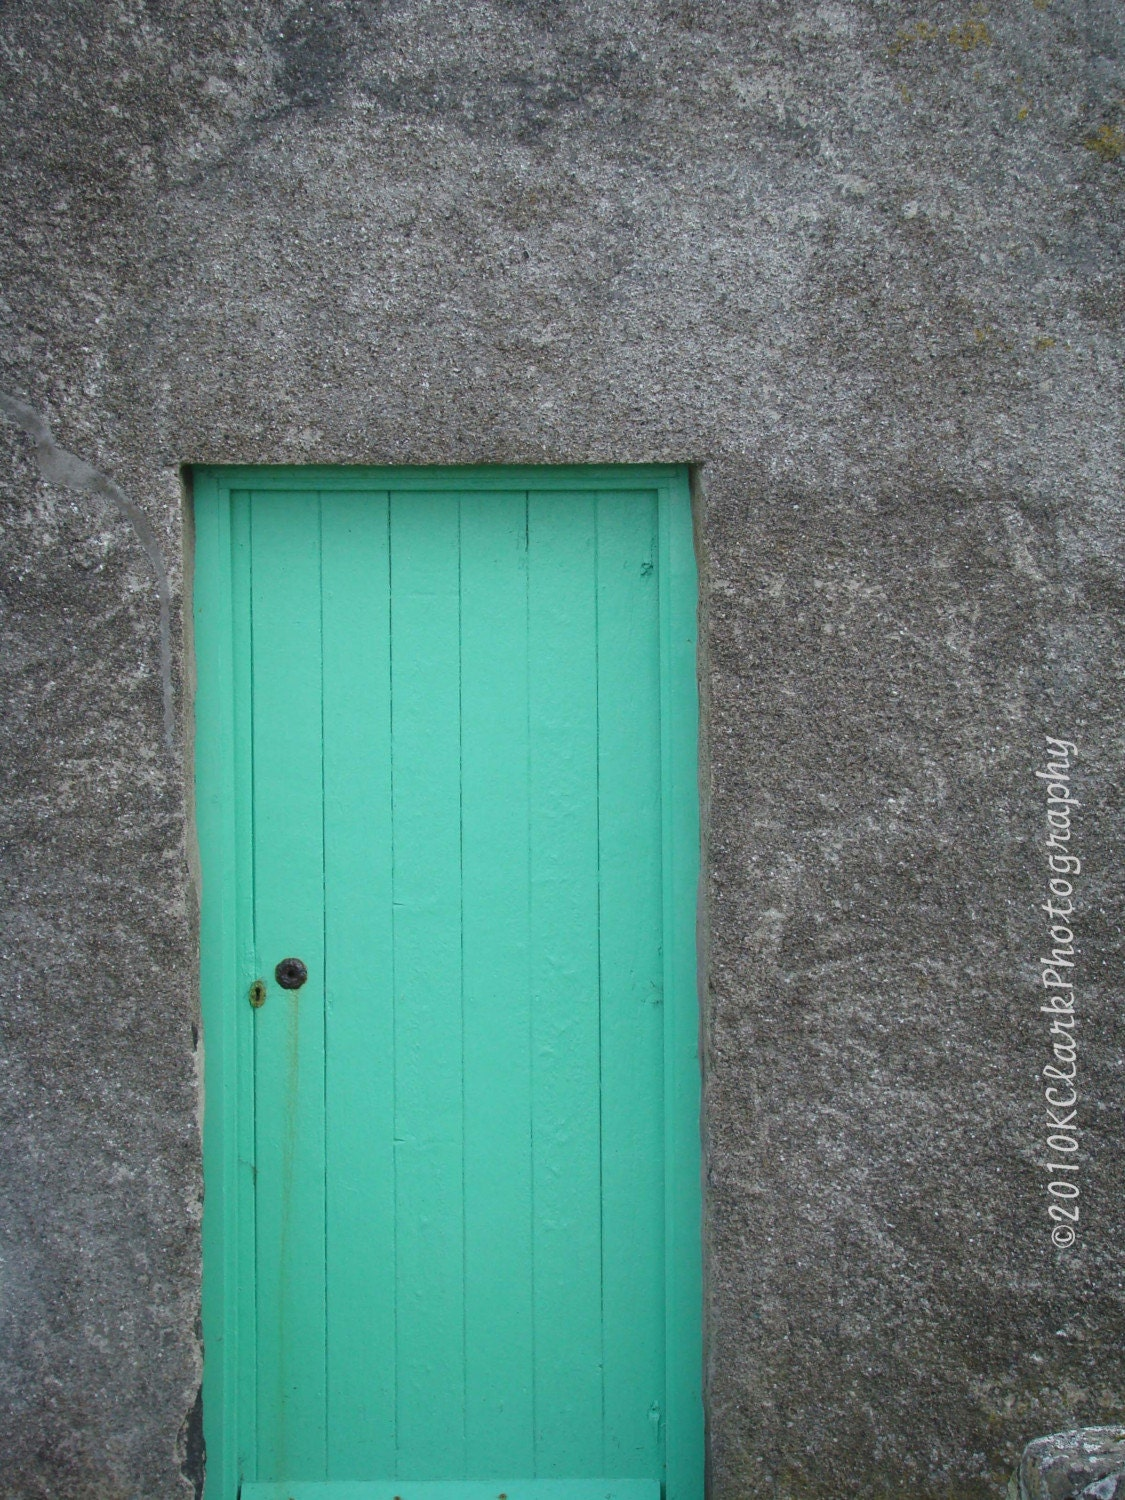 Aqua Scottish Door  8x10 signed photo scotland stone cottage teal blue green minimal decor feminine gray - KClarkPhotography